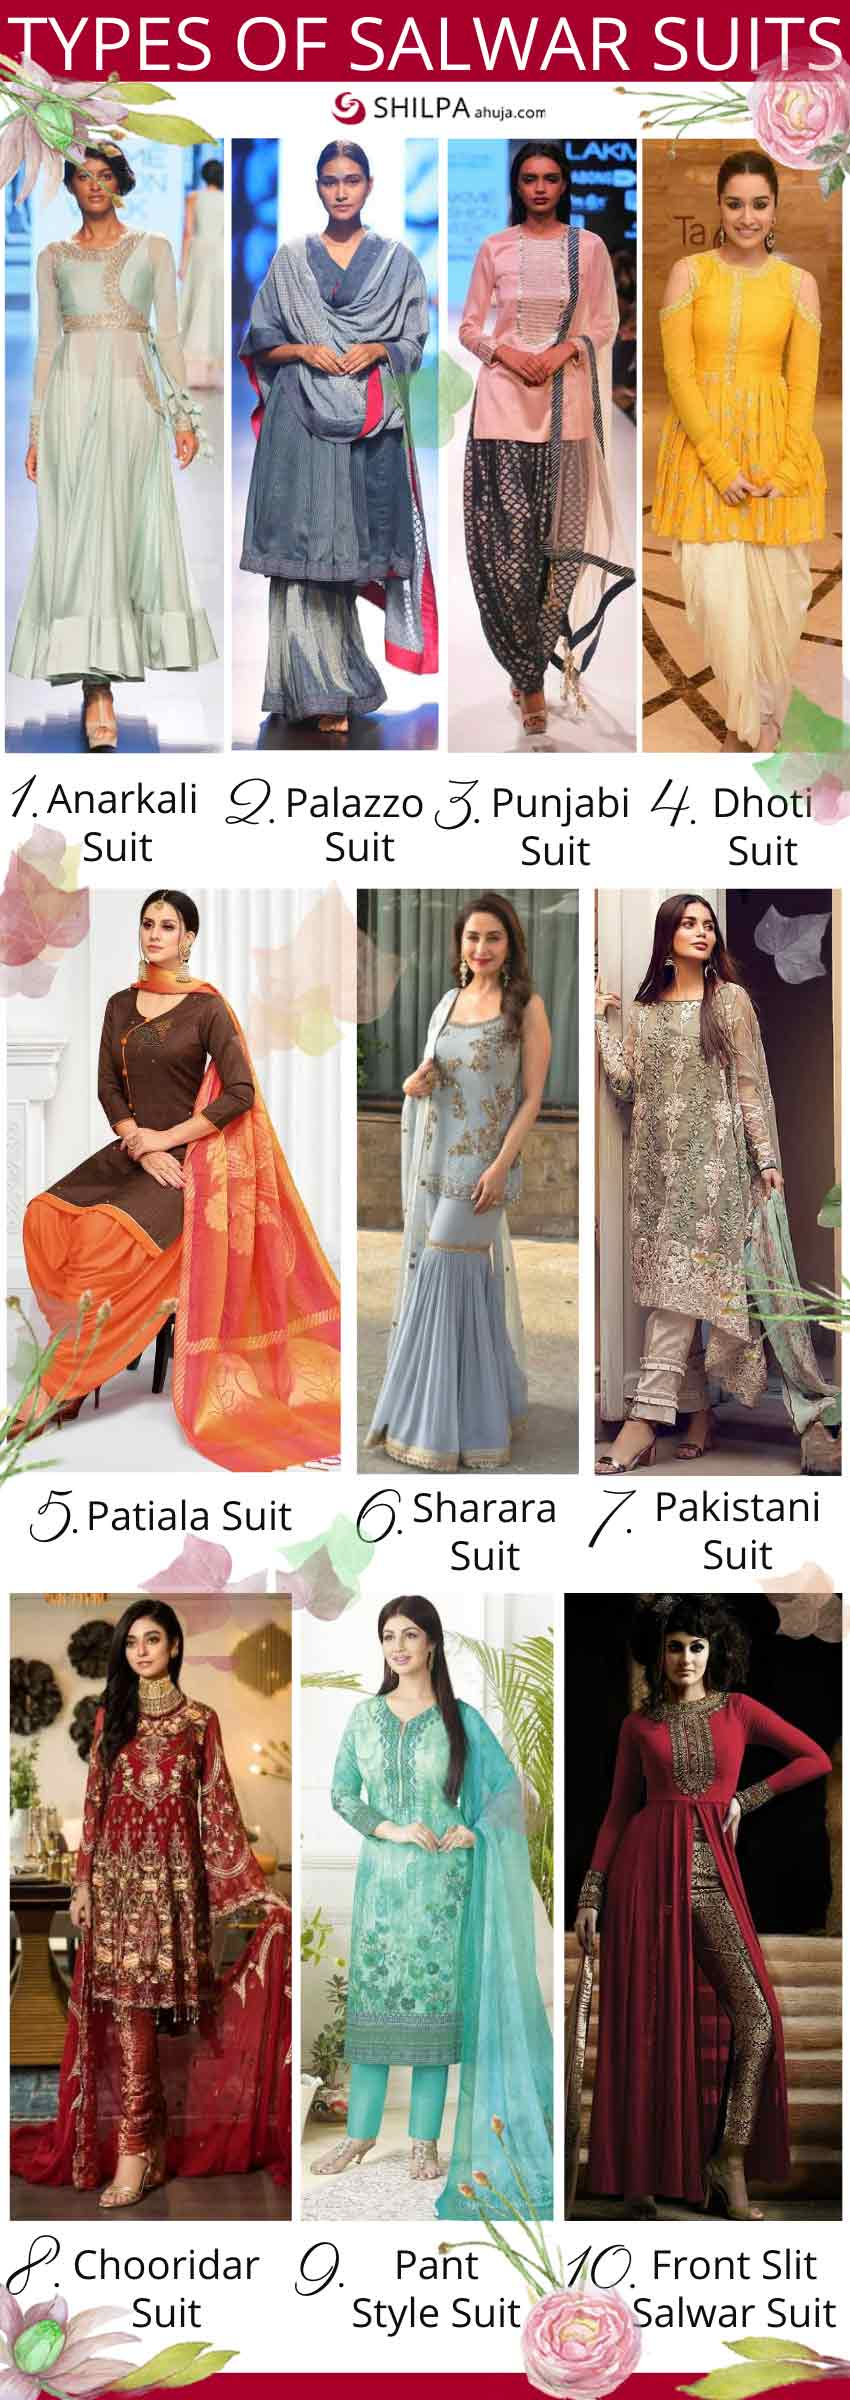 TYPES-OF-SALWAR-SUITS-for-women-ladies-indian-ethnic-wear